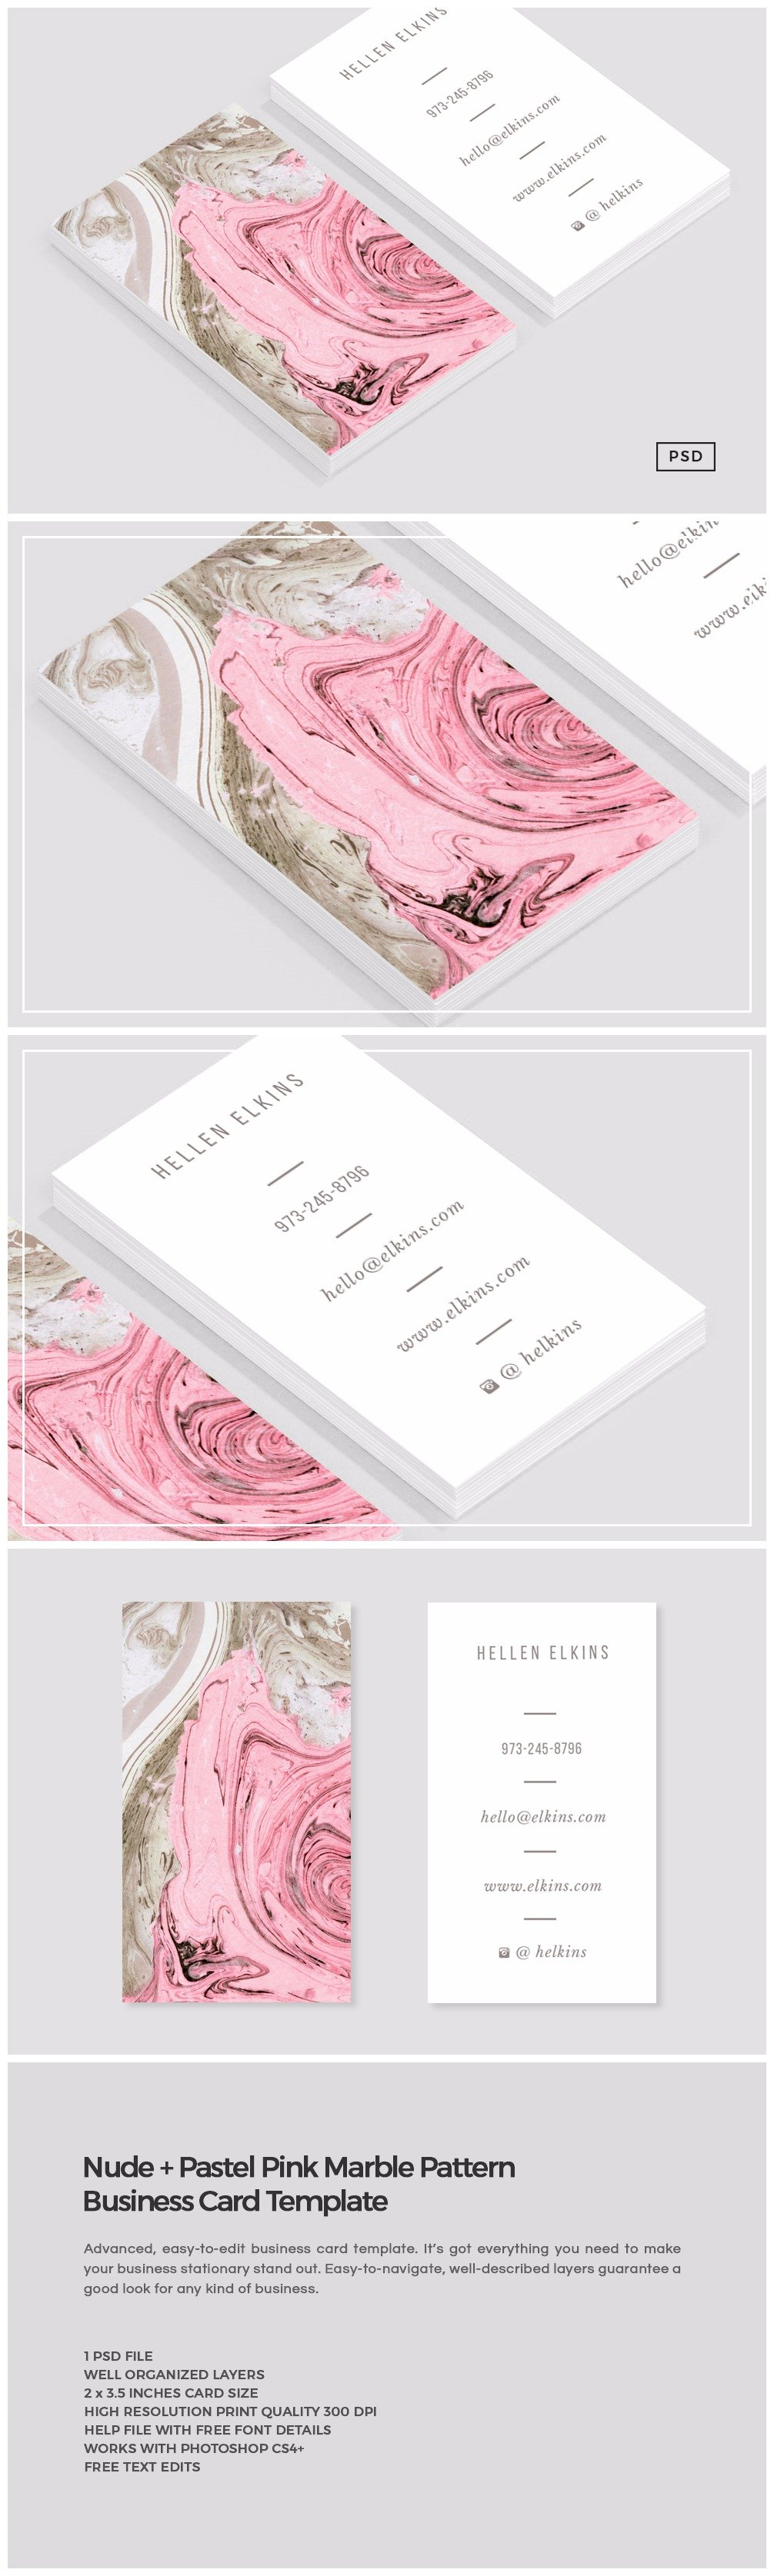 Nude pink marble business card business card templates nude pink marble business card business card templates creative market kristyandbryce Images